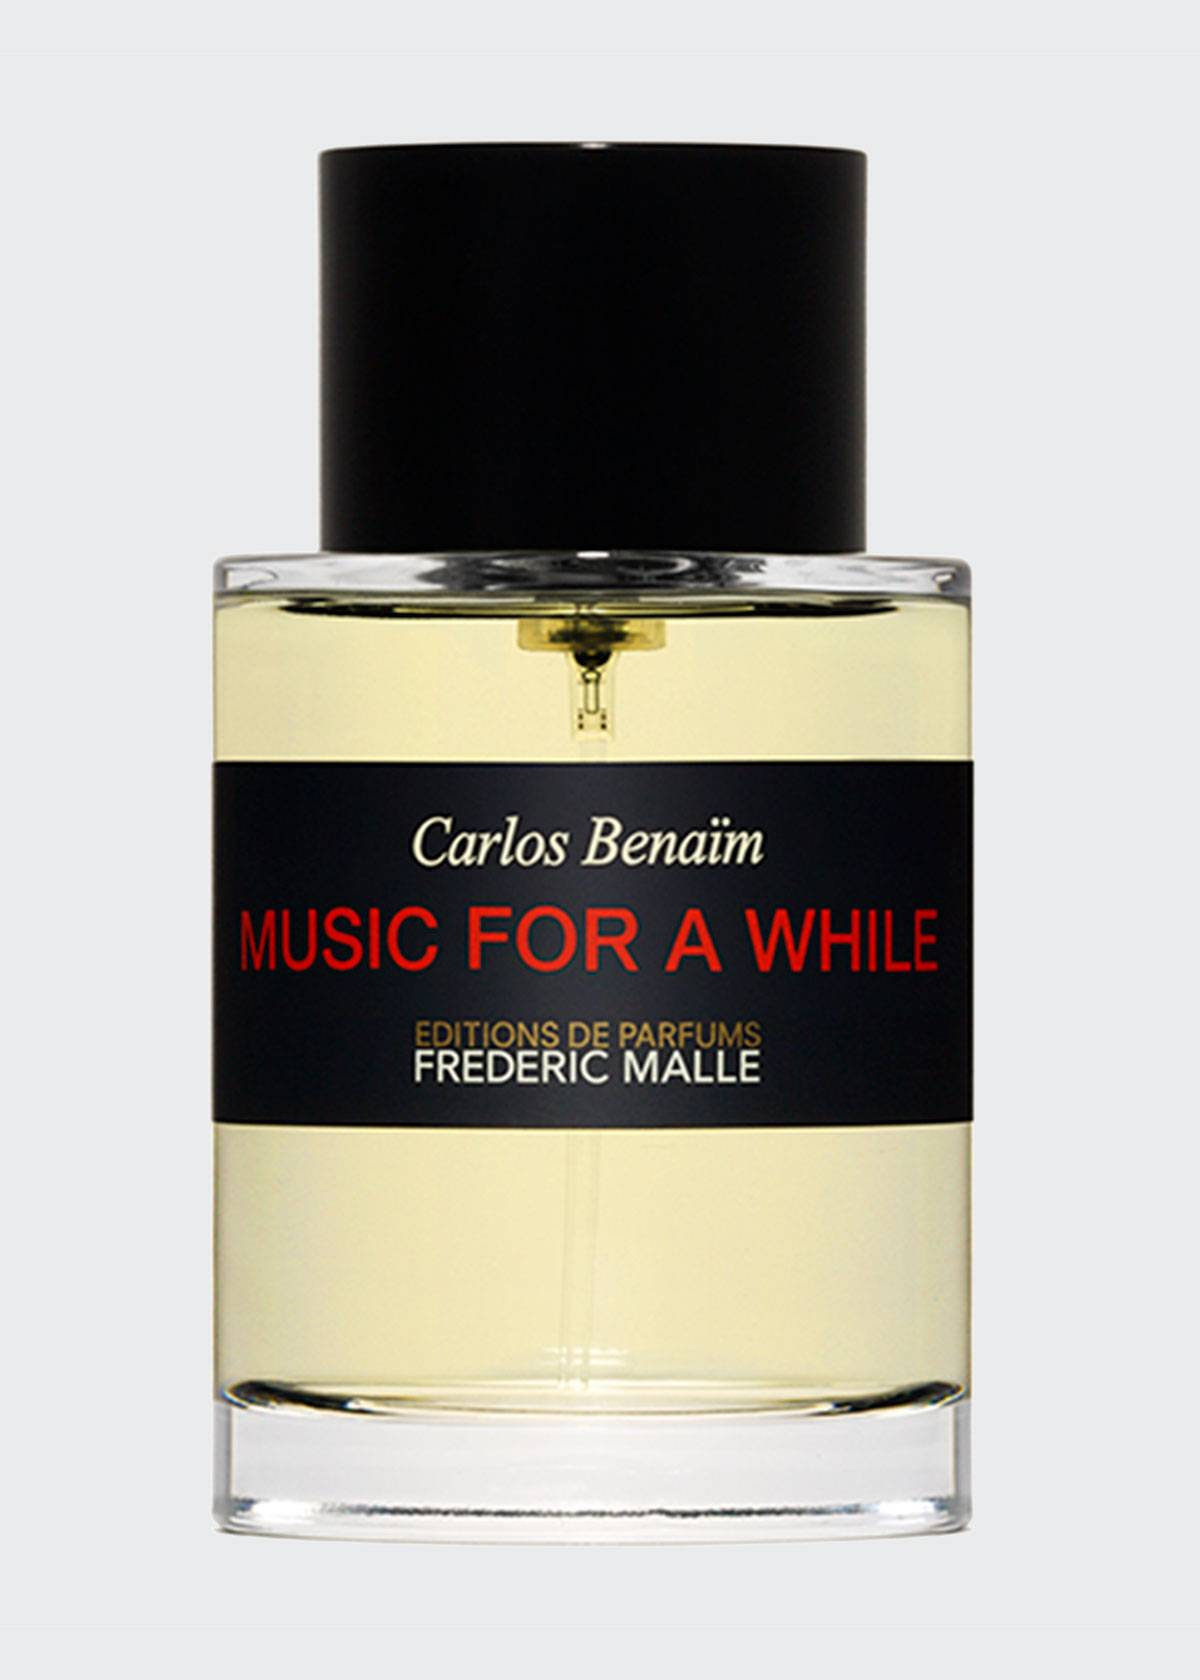 Frederic Malle Music for a While Perfume, 3.4 oz./ 100 mL  - Size: female